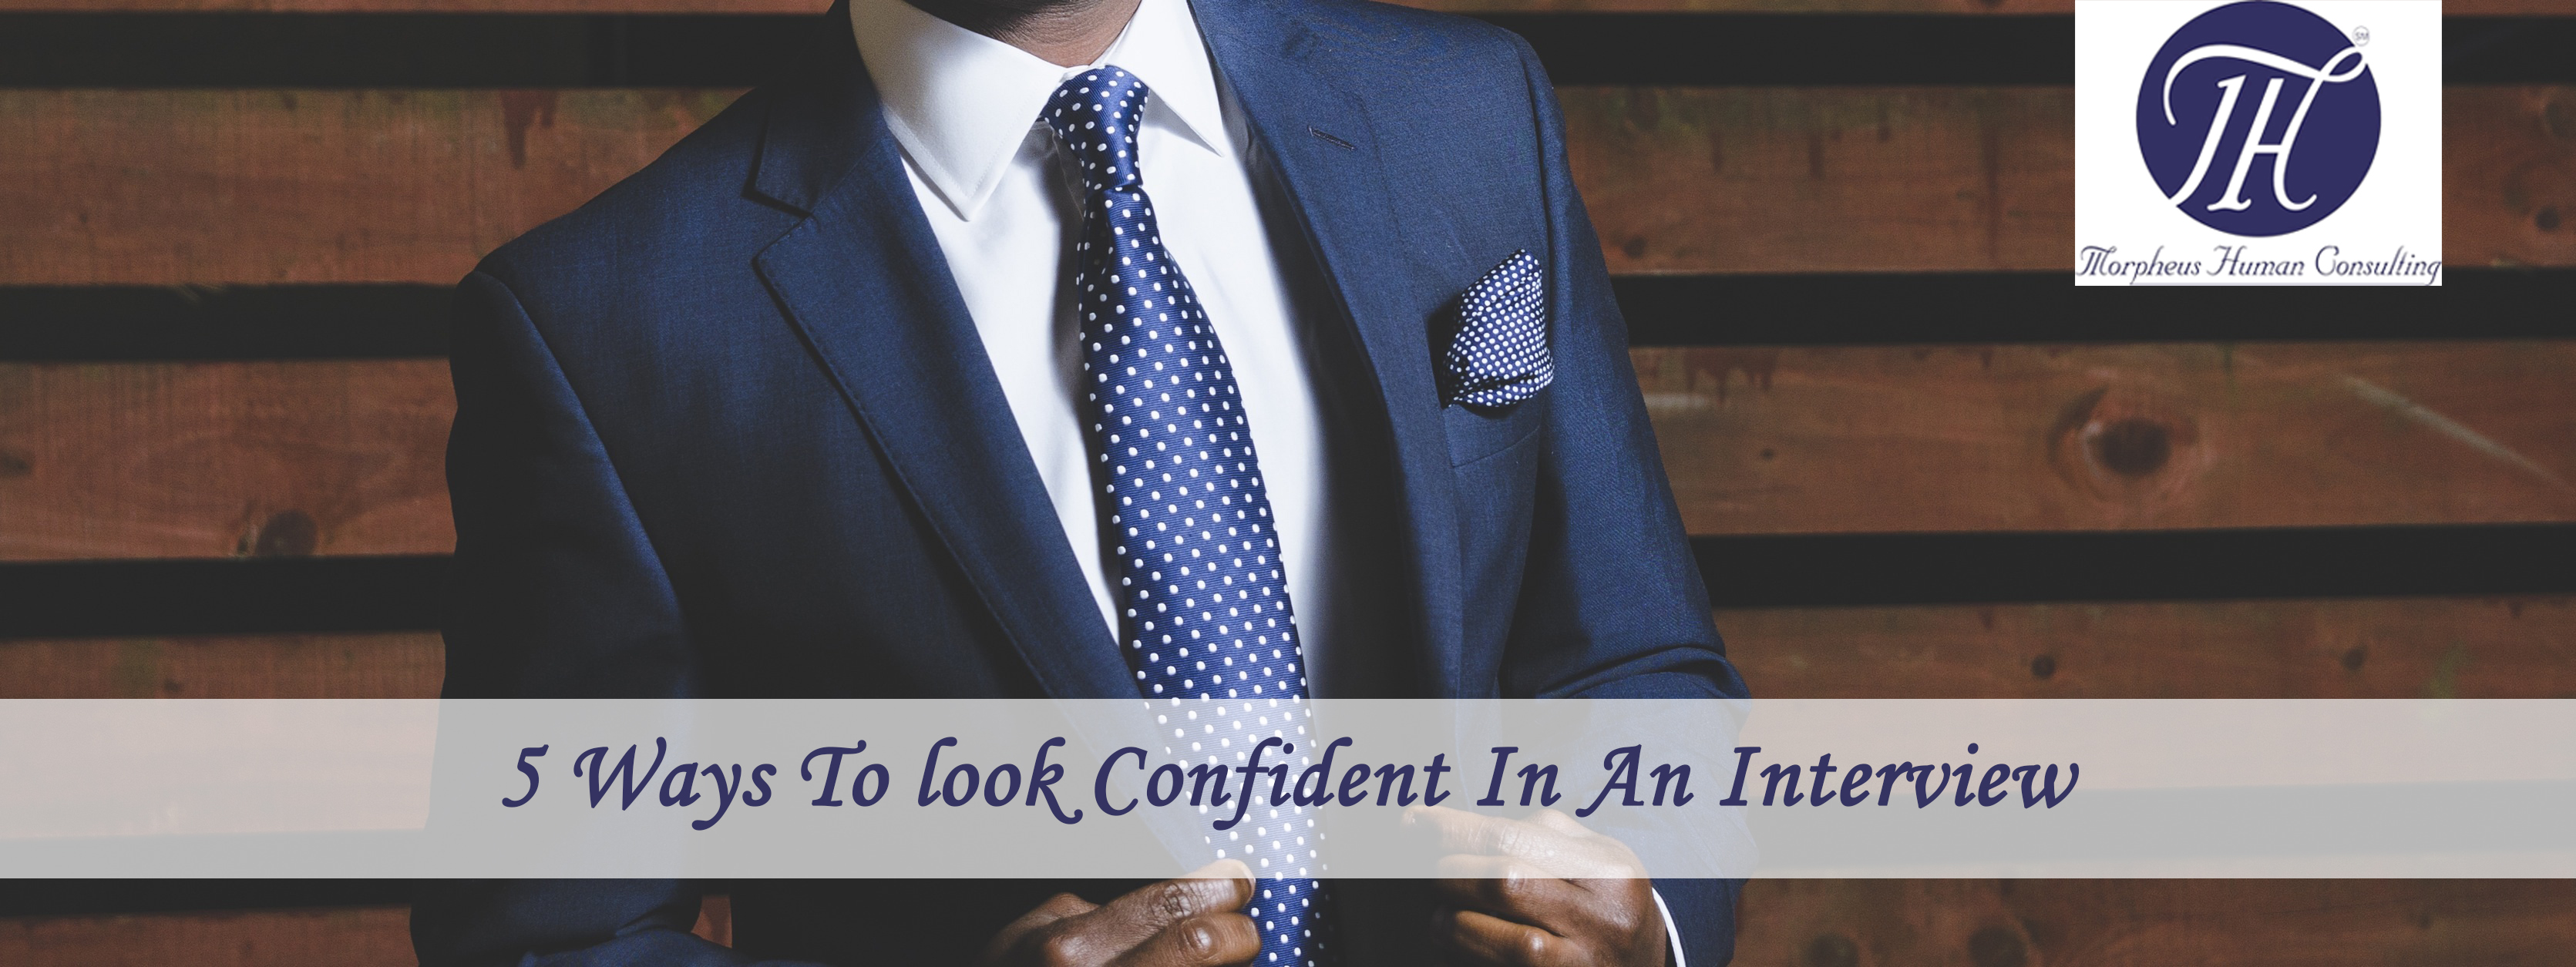 Ways To Look Confident In An Interview